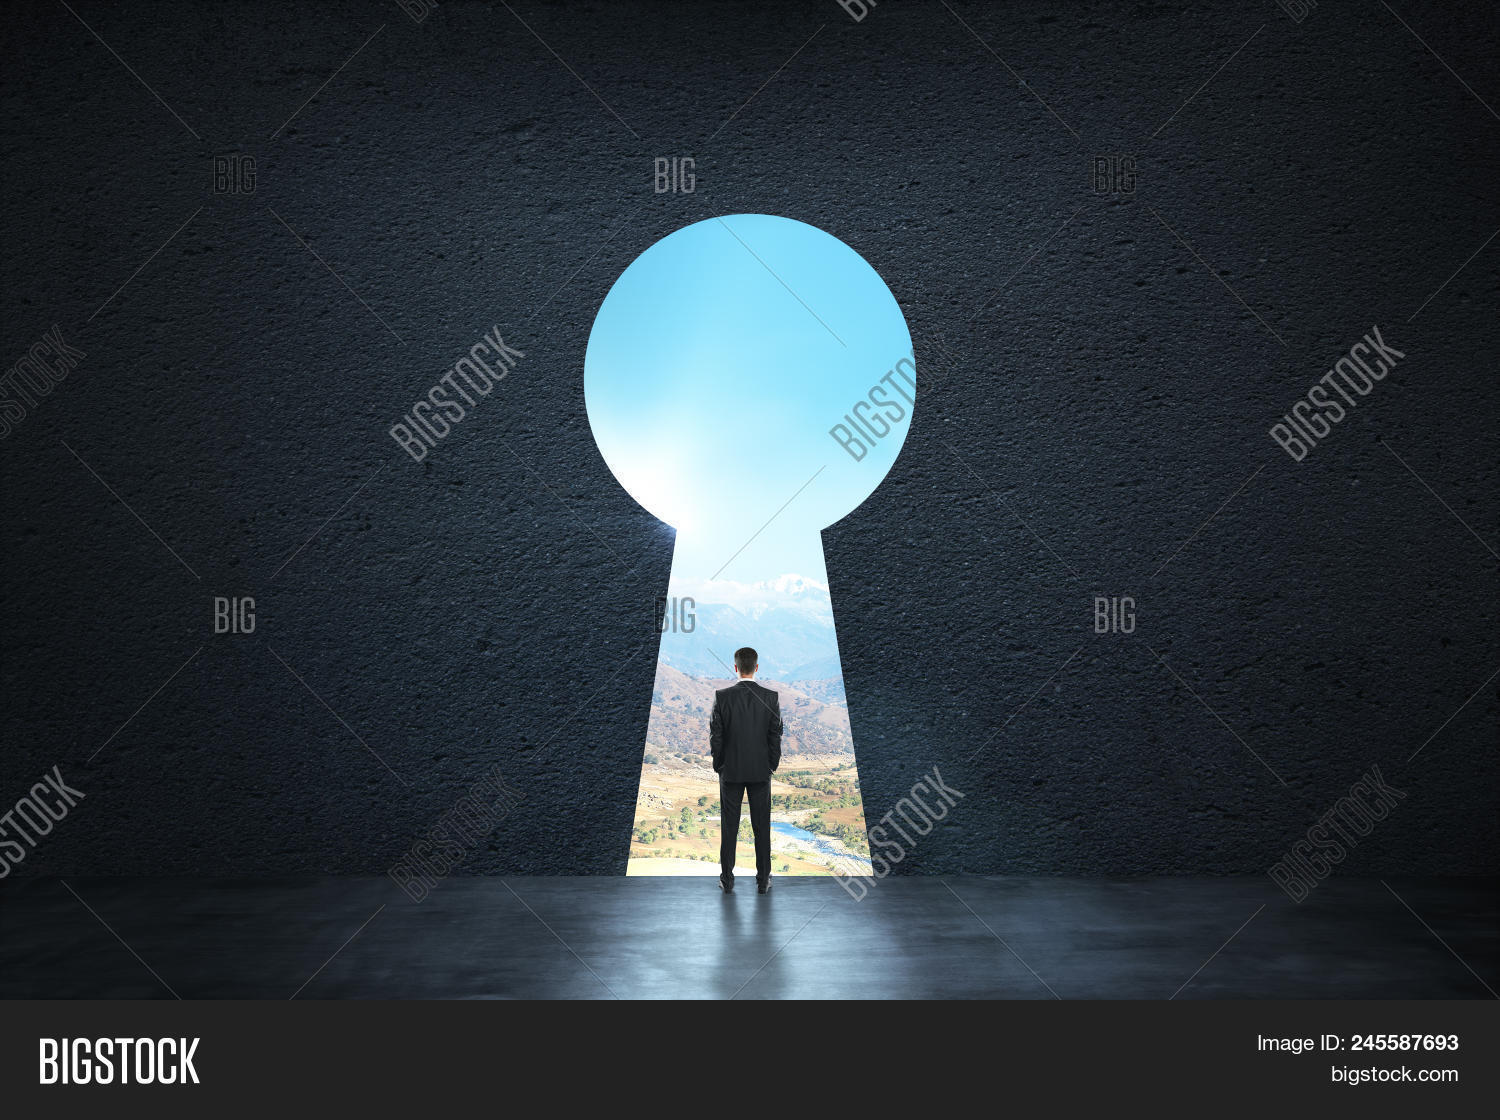 3d,abstract,access,achieve,achievement,activity,against,alone,back,background,black,business,businessman,career,concept,concrete,dark,door,dream,enter,entrance,entry,floor,future,goal,hole,idea,inside,interior,key,keyhole,landscape,light,man,open,opportunity,progress,research,room,shadow,solution,standing,success,successful,sunlight,thinking,view,viewpoint,wall,way